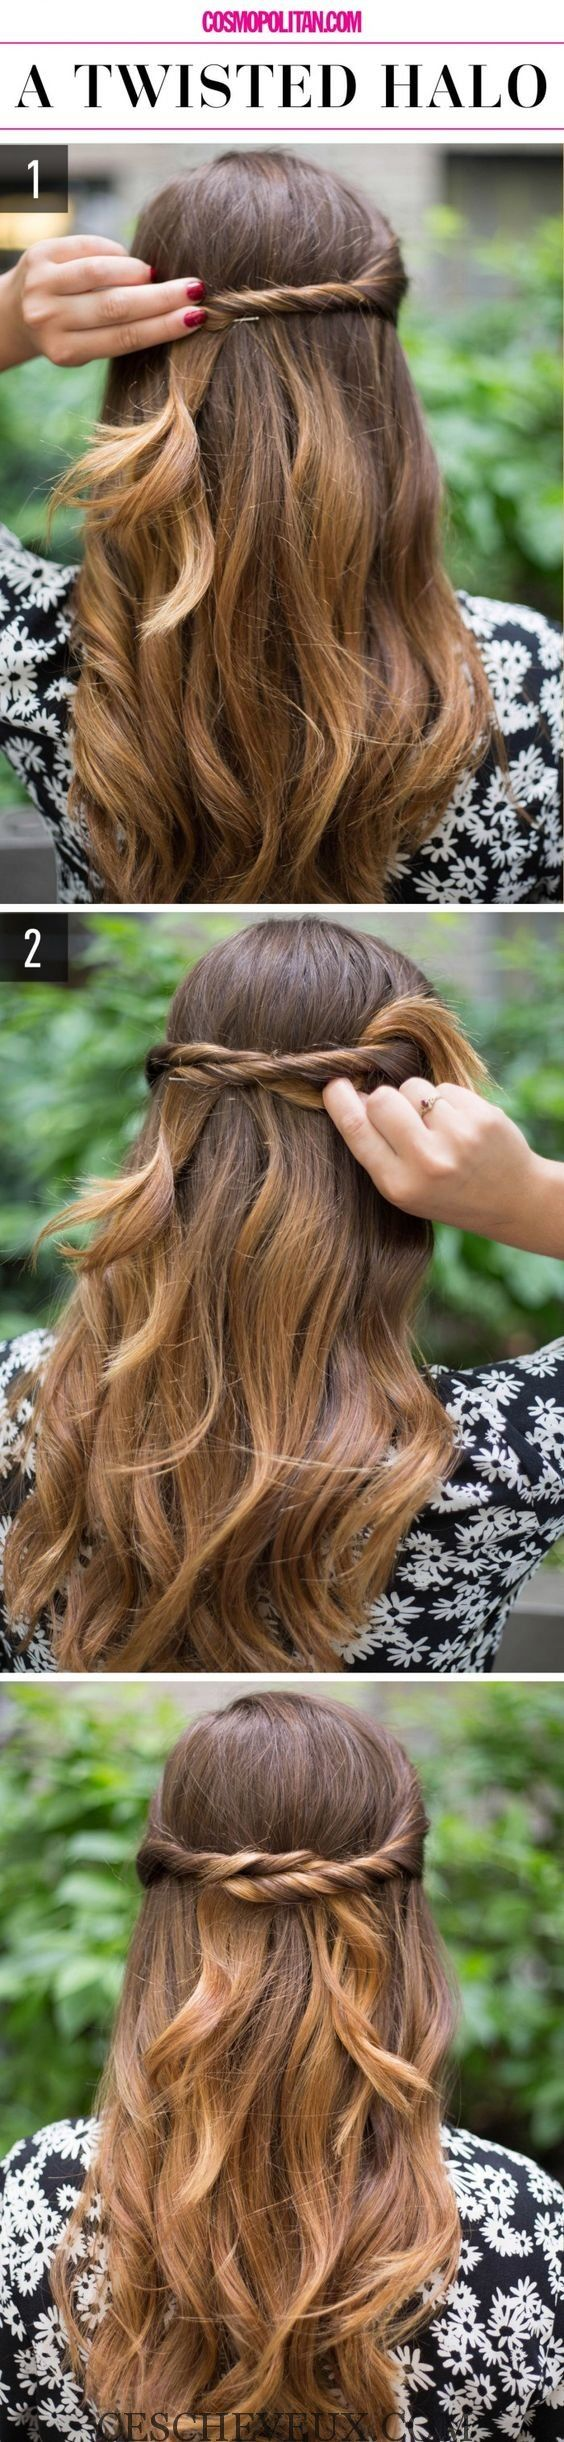 Coiffure facile à reproduire homecoming hair styles pinterest